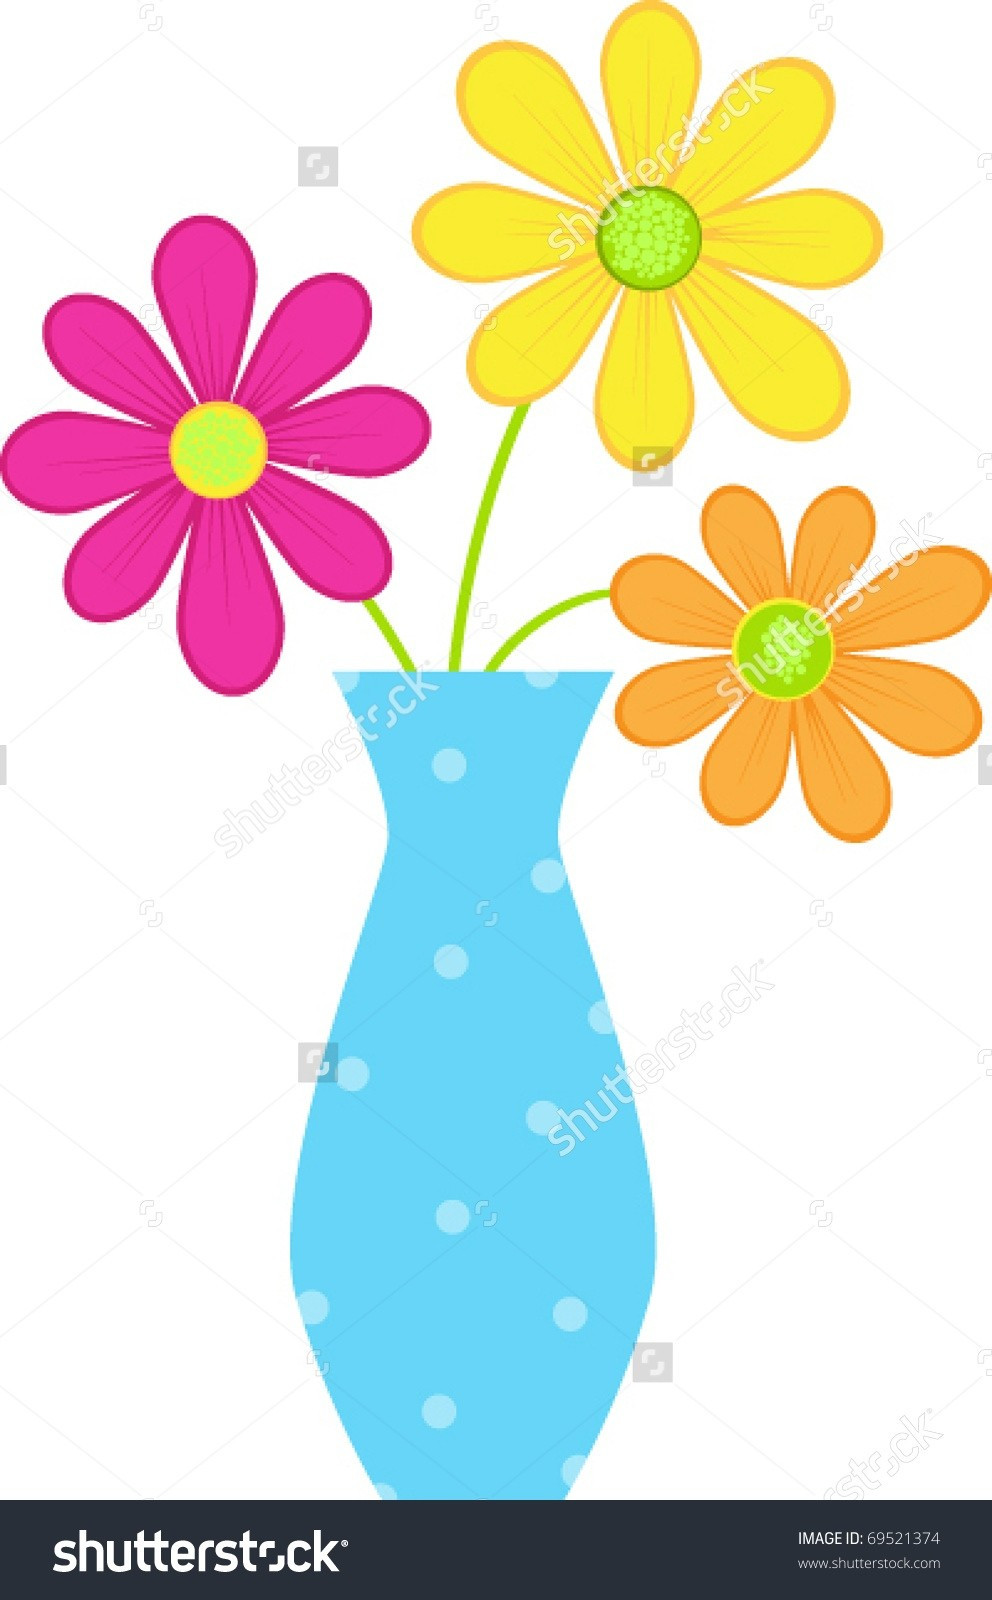 colorful vases images of will clipart colored flower vase clip arth vases art infoi 0d of for intended for flower vase images clip art elegant blue flower clipart vase pencil and in color blue flower